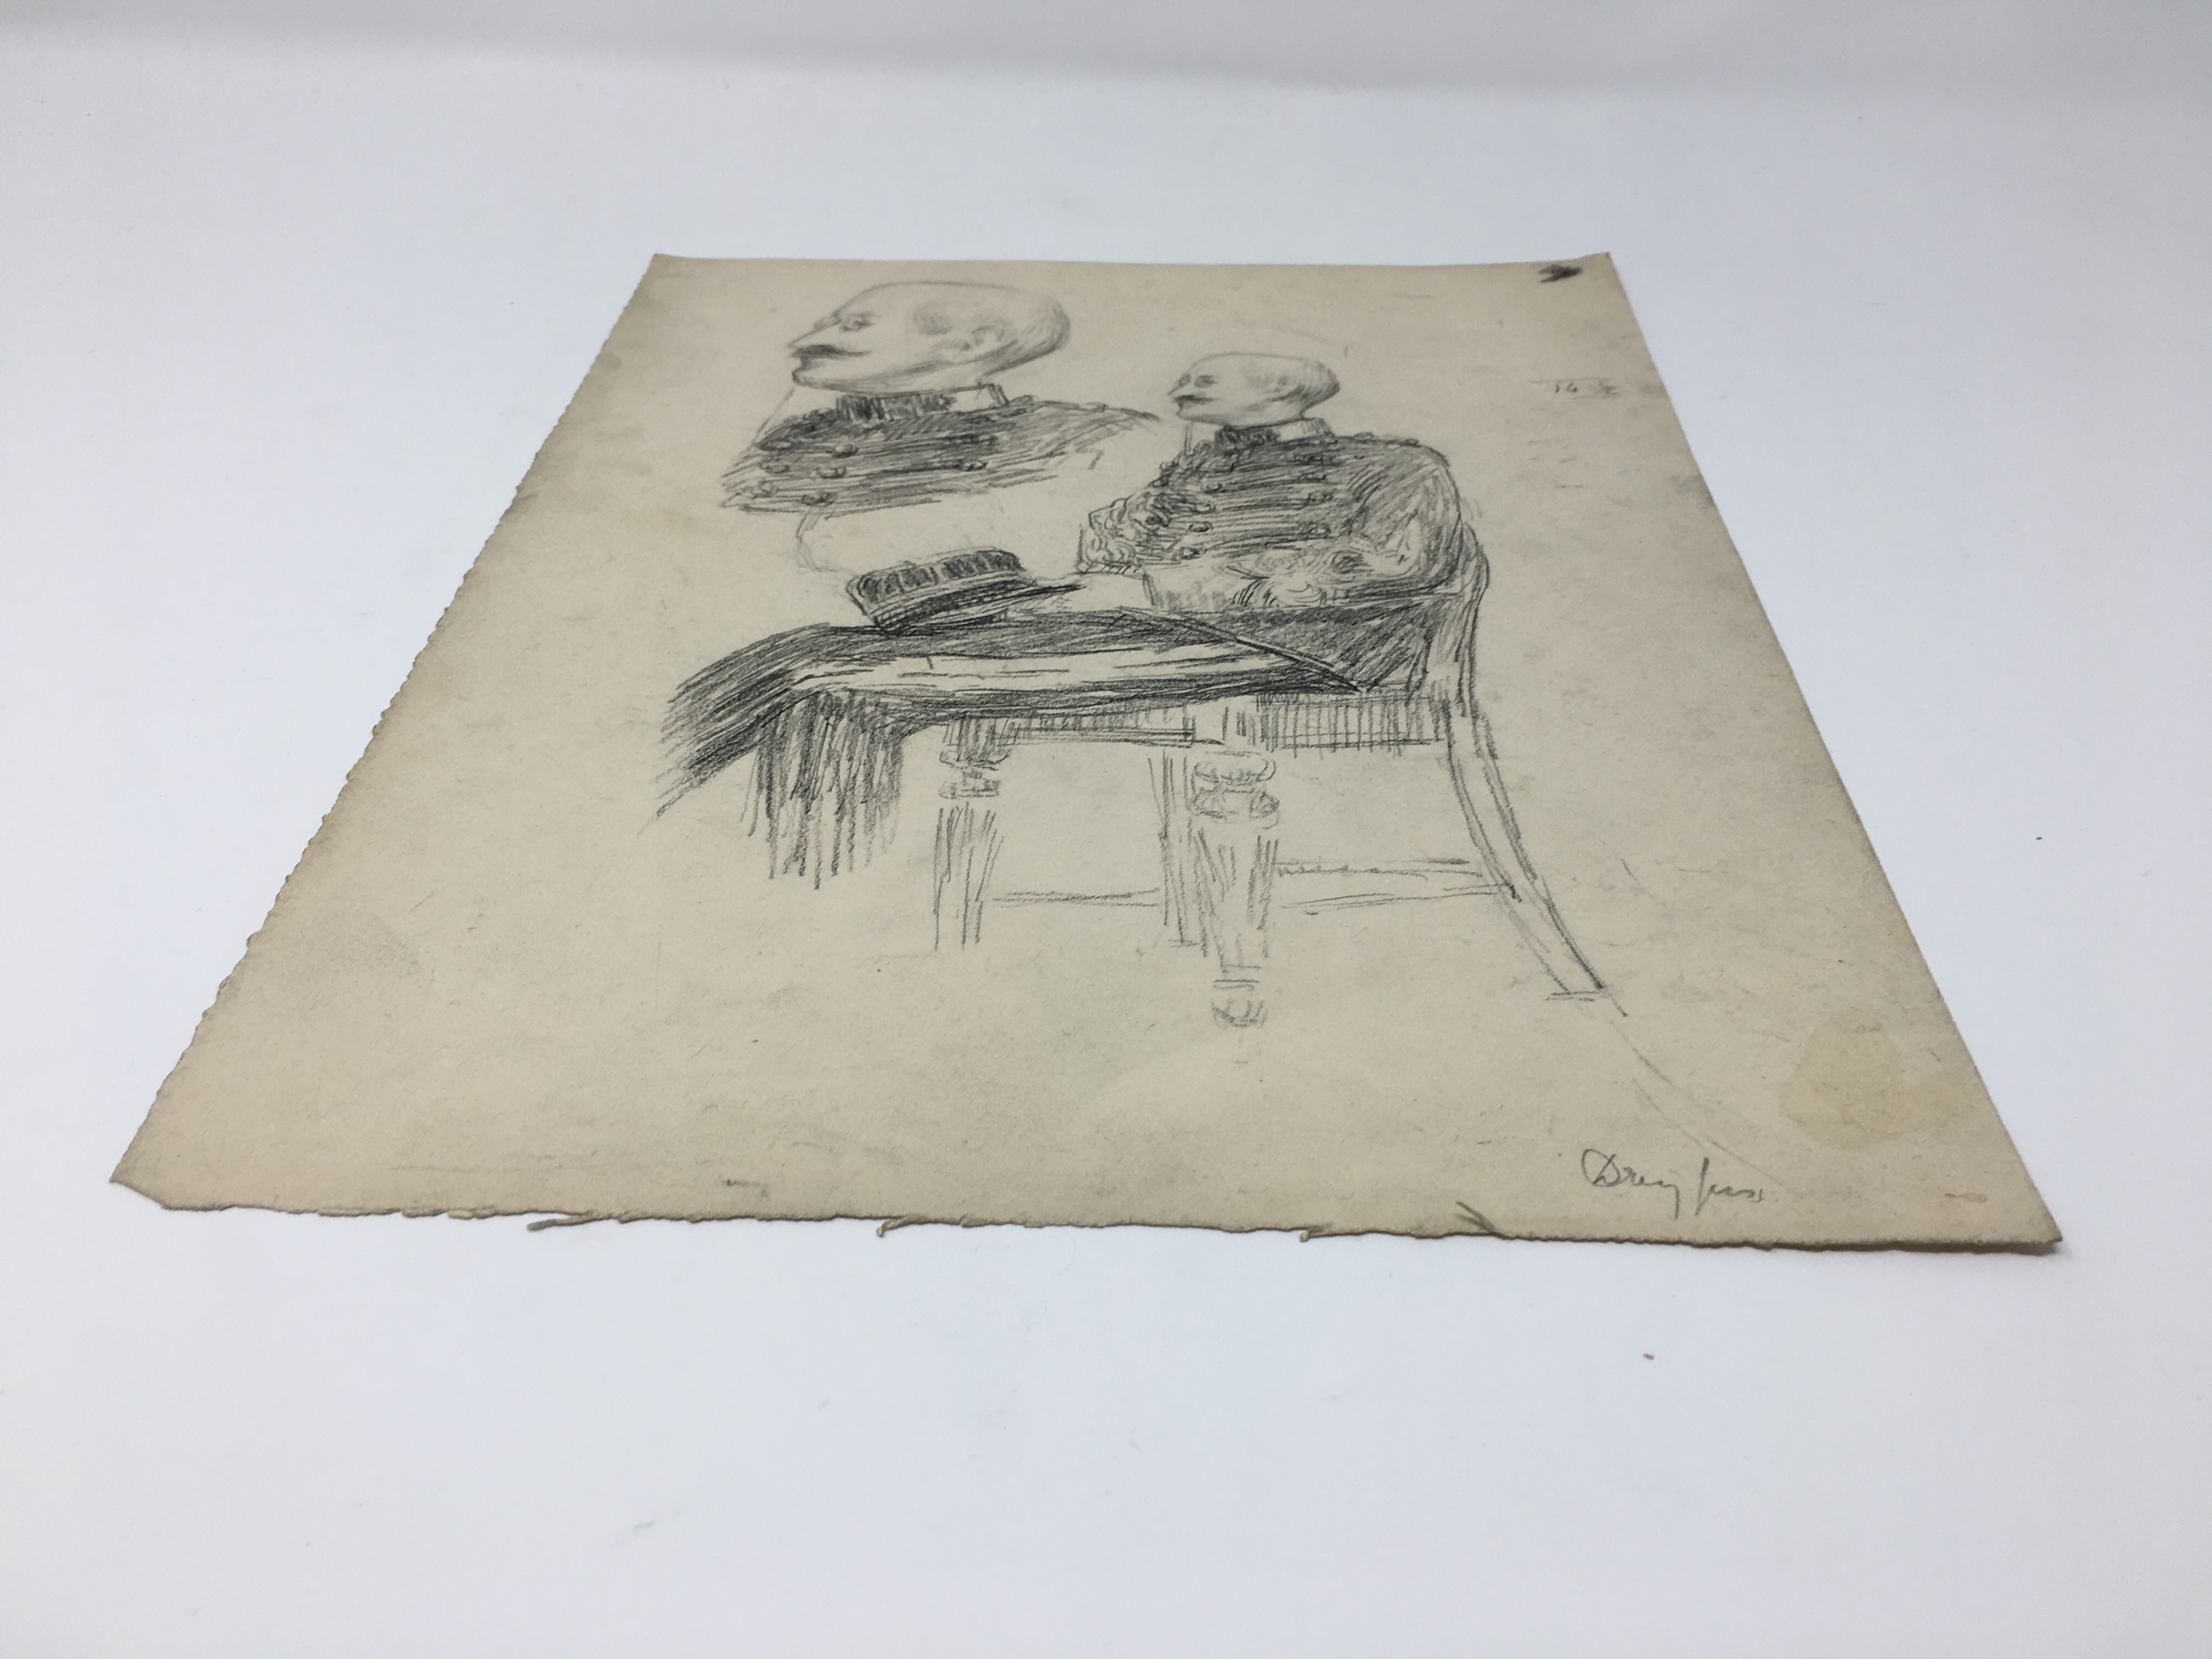 J'Accuse Newspaper, Emile Zola Quote, Signed Dreyfus Portrait, Rare Trial Drawings & Schwartzkoppen - Image 15 of 74